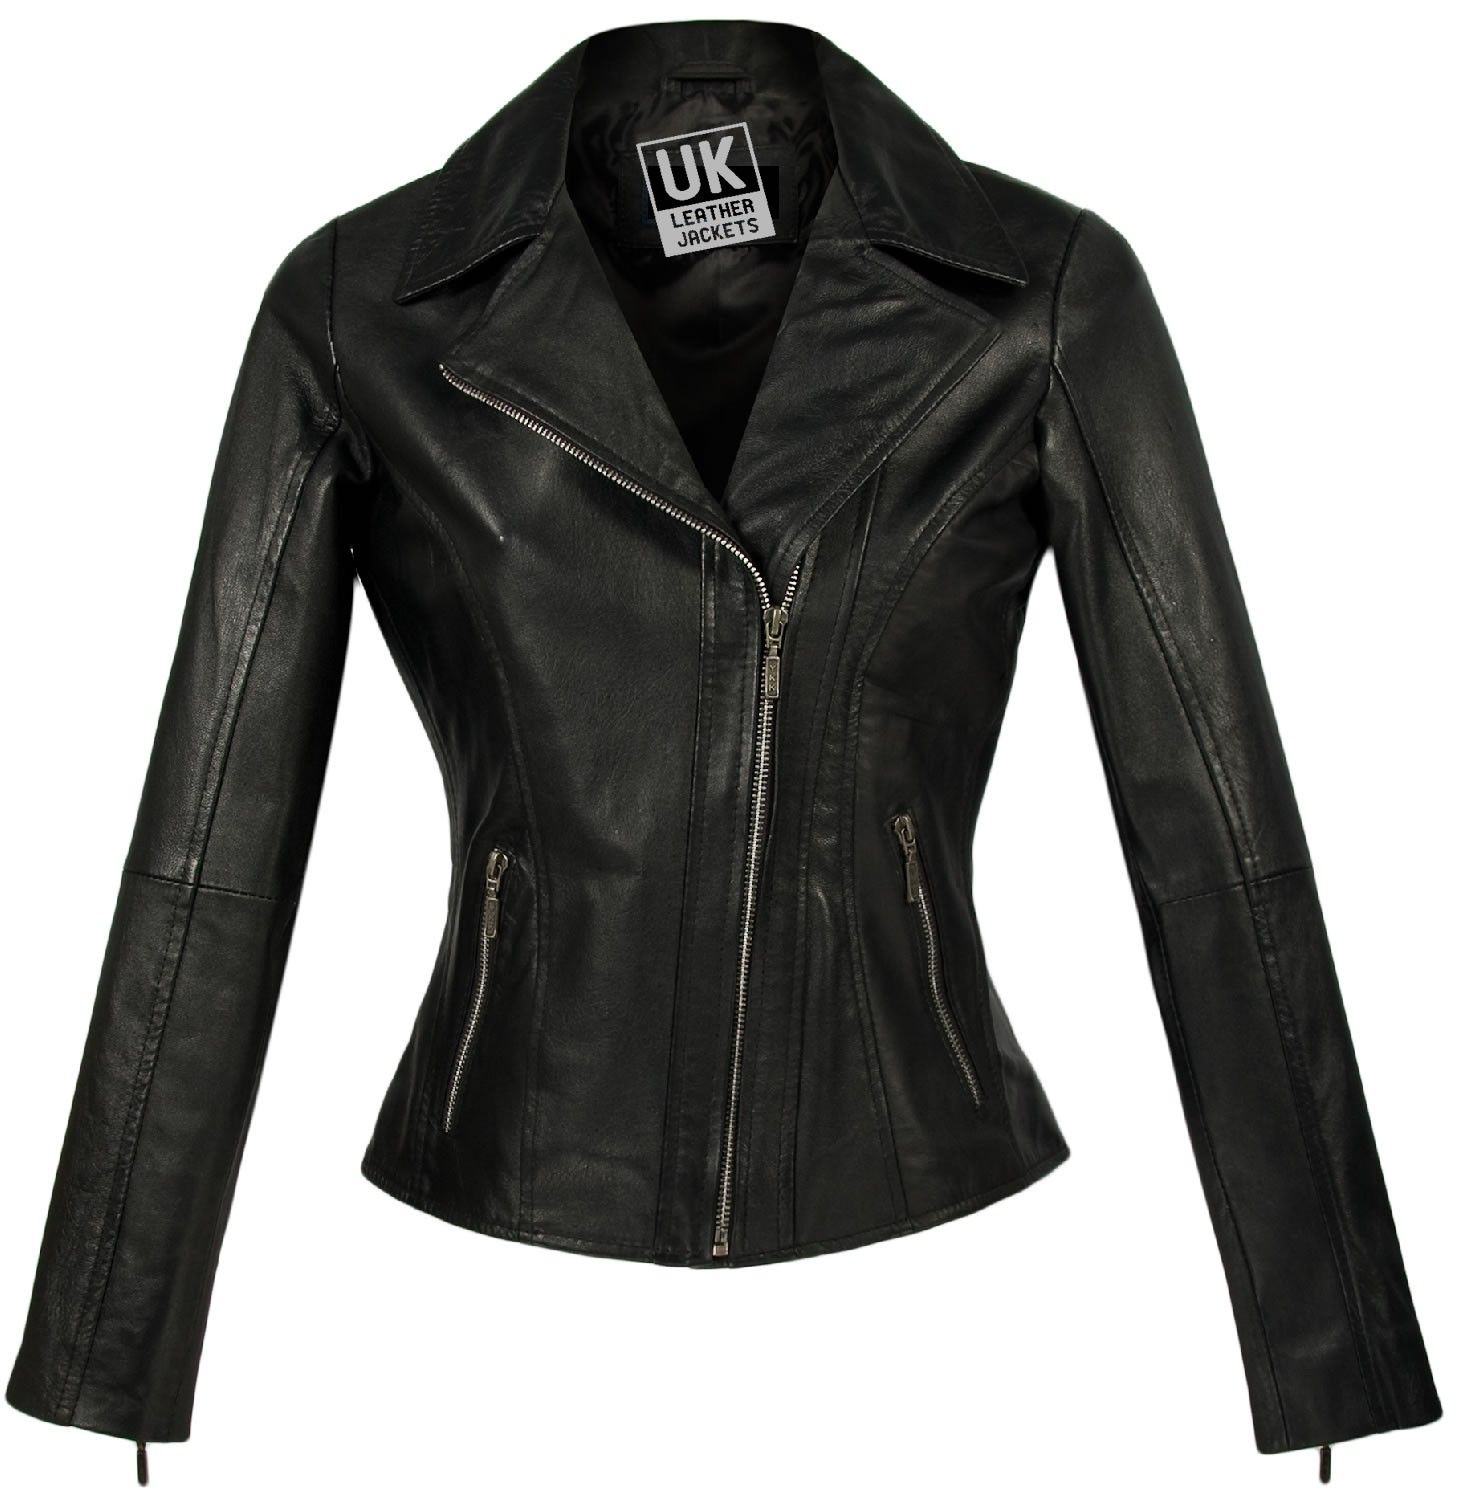 women's leather jacket - | Women's Leather Jackets | Pinterest ...